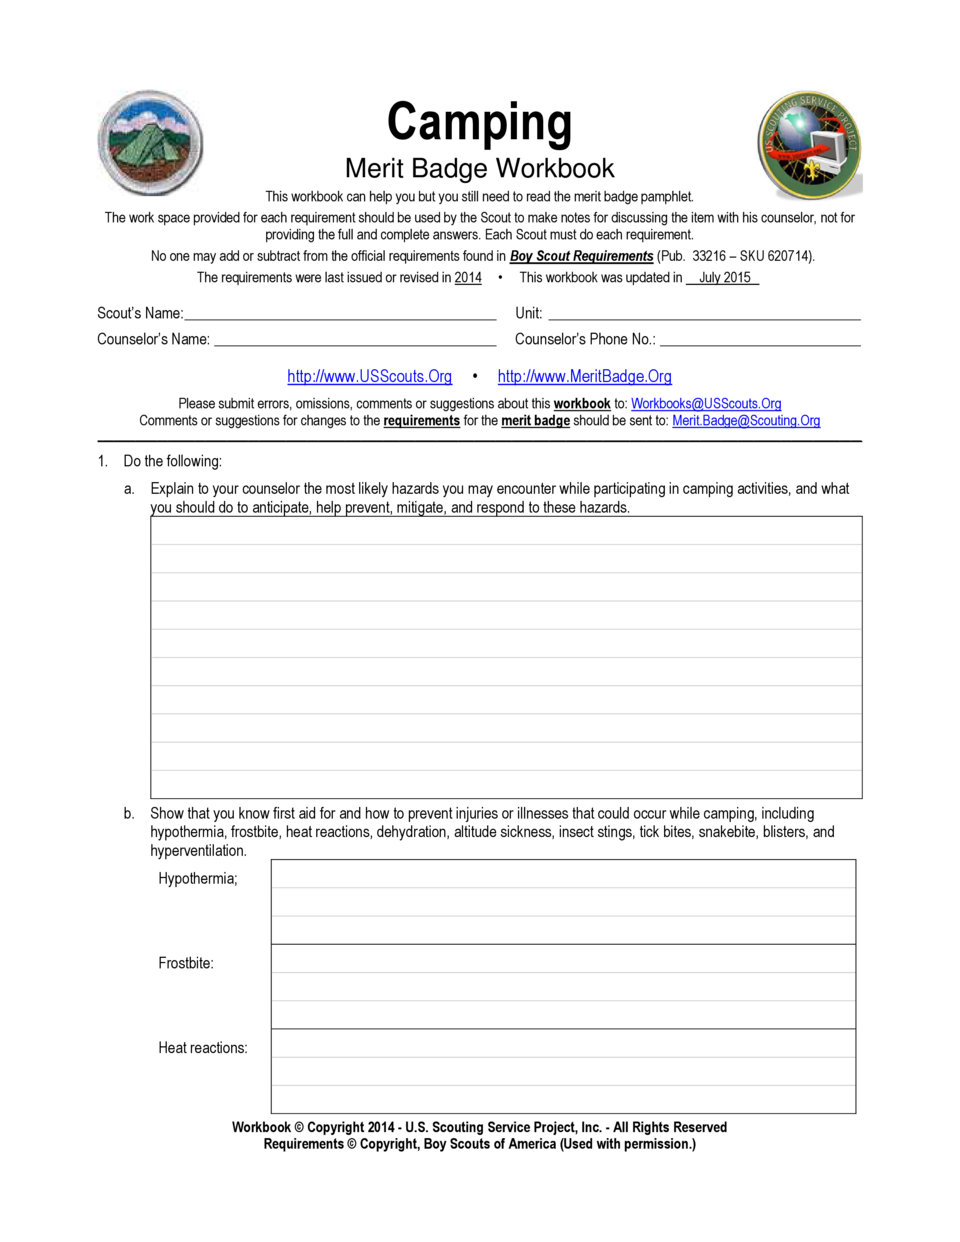 worksheet Hiking Merit Badge Worksheet camping merit badge simplebooklet com workbook this can help you but still need to read the